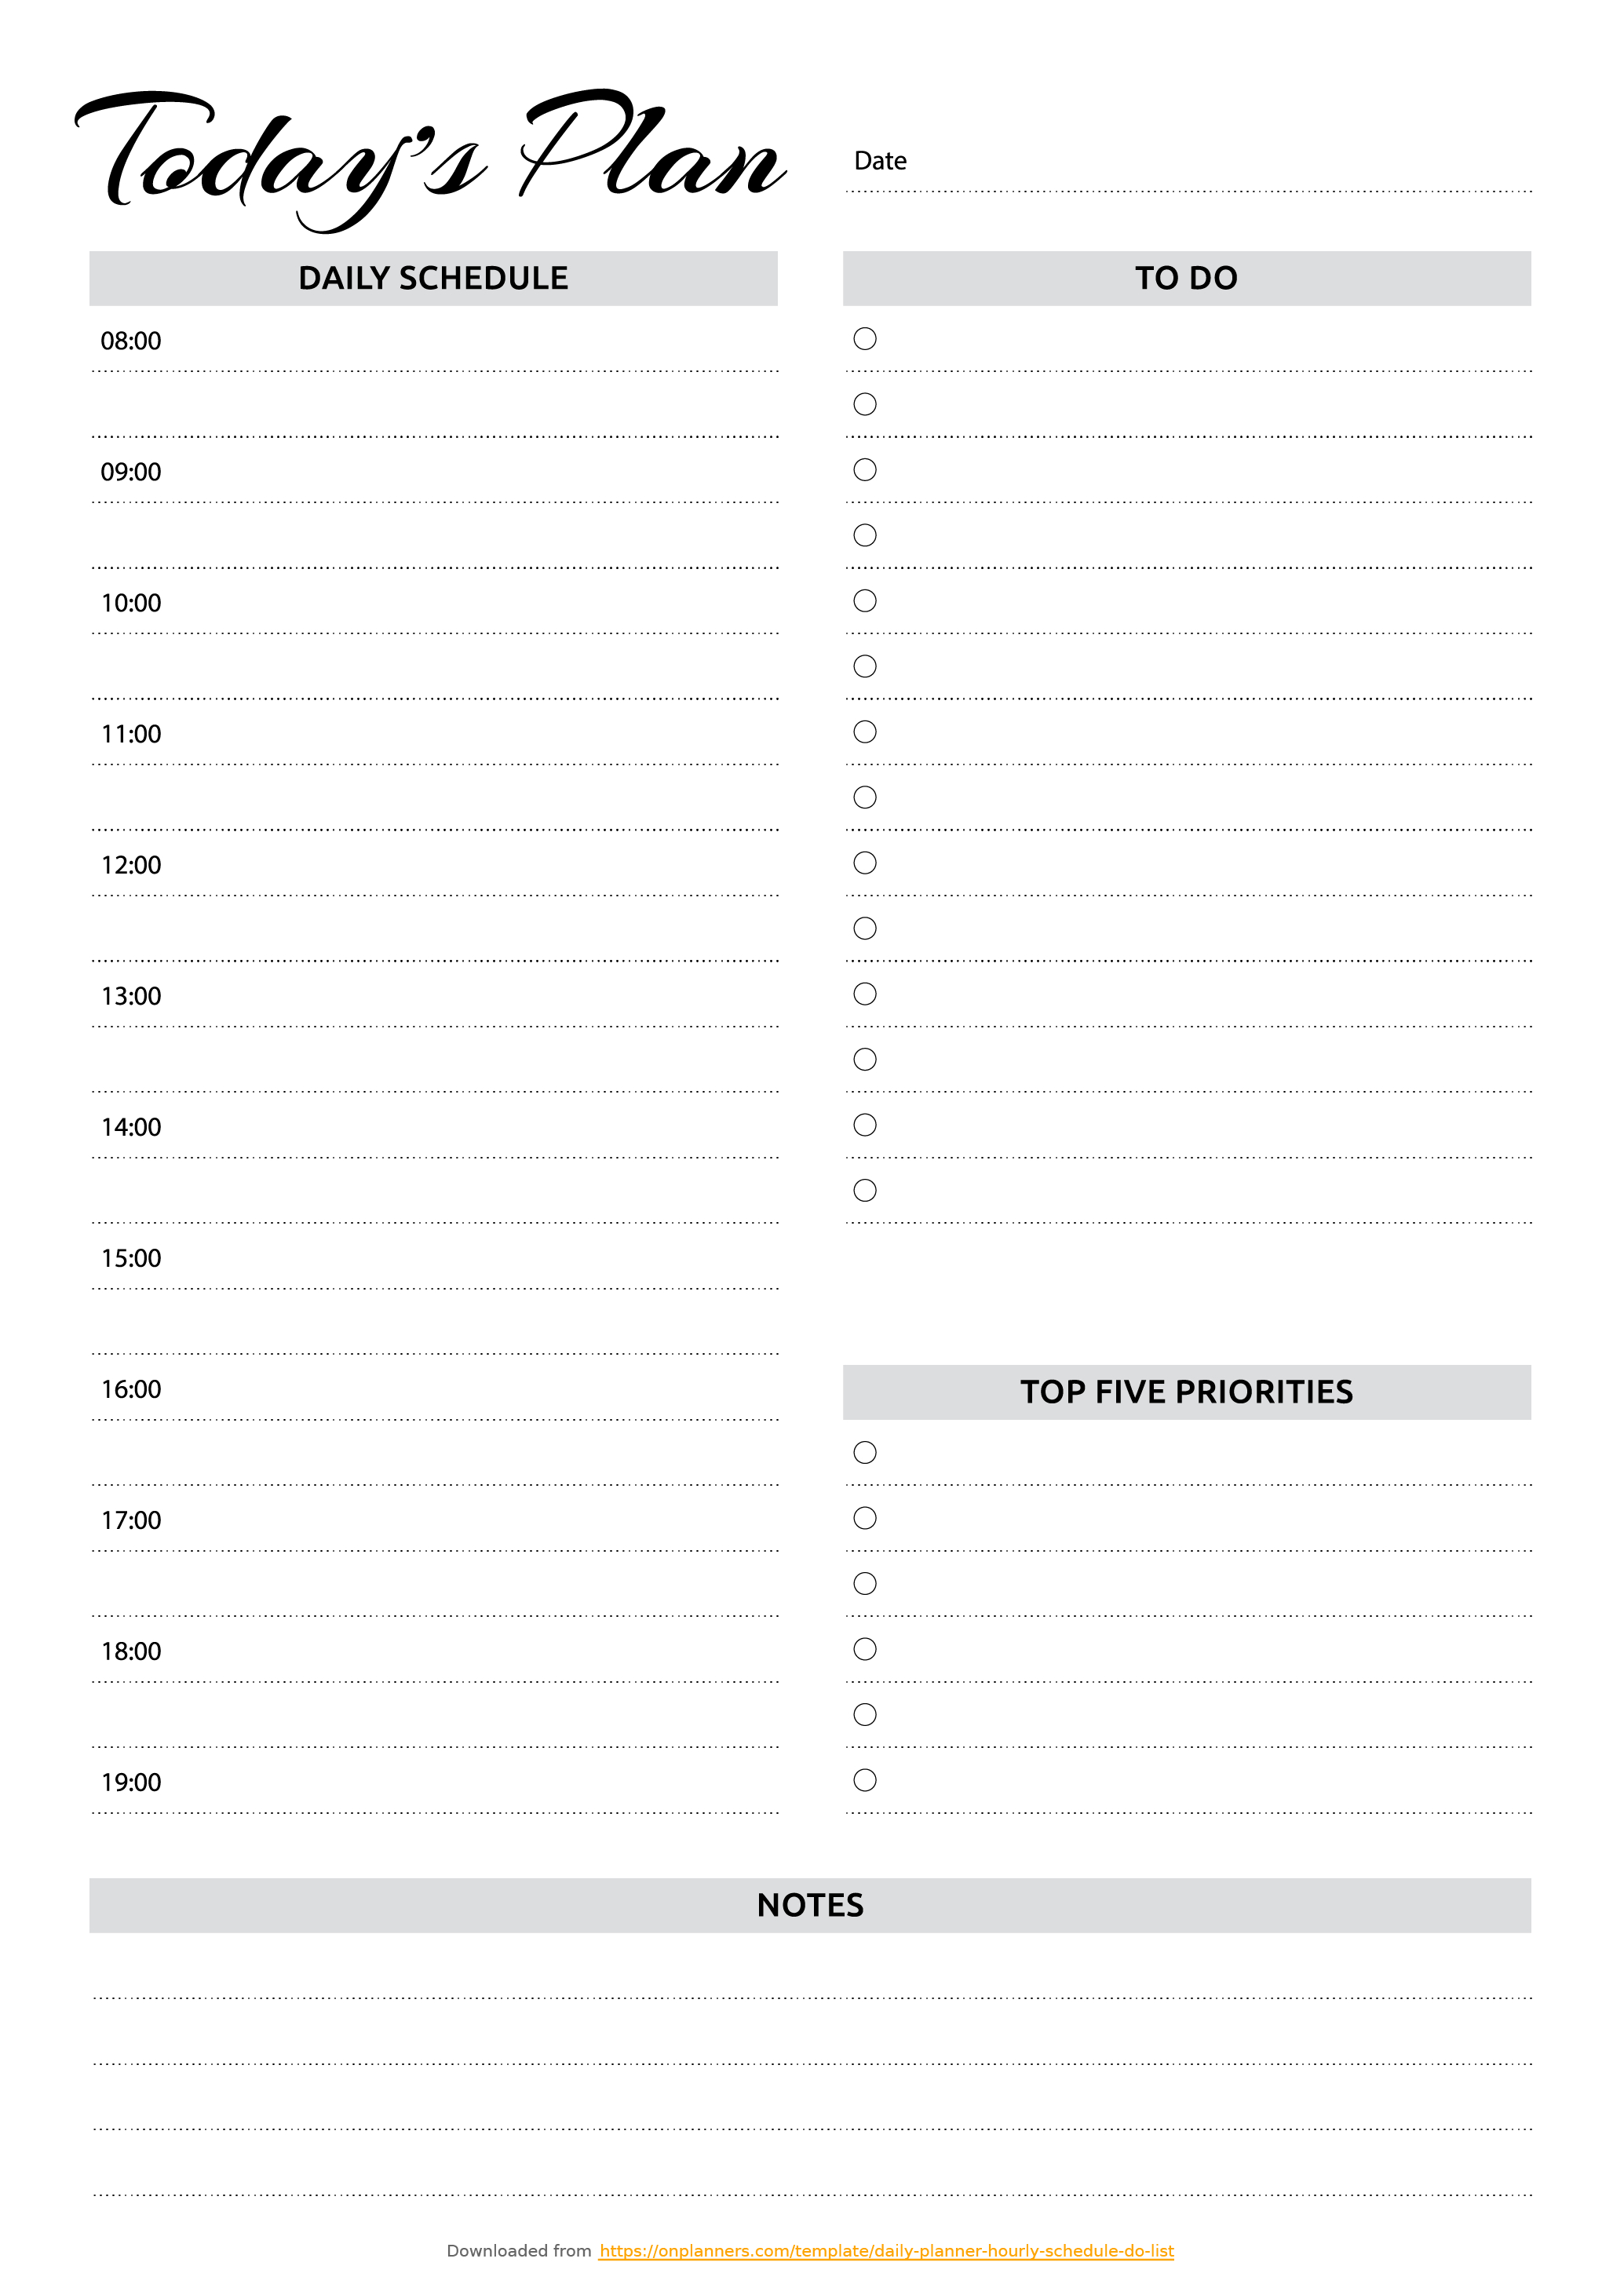 Free Printable Daily Planner With Hourly Schedule & To-Do List Pdf - Free Printable To Do List Pdf